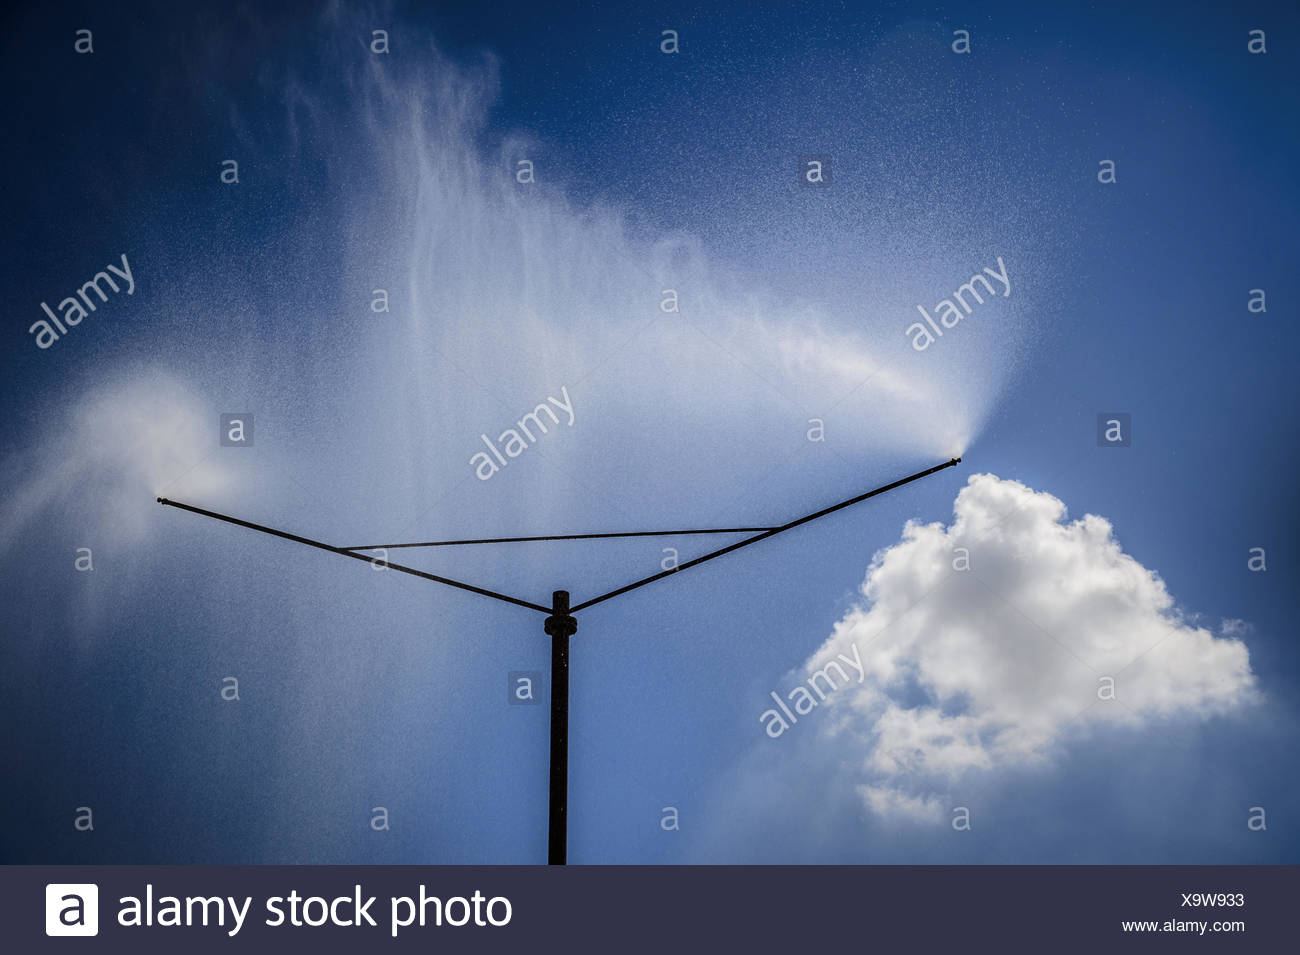 A sprinkler system sprayed a water curtain - Stock Image